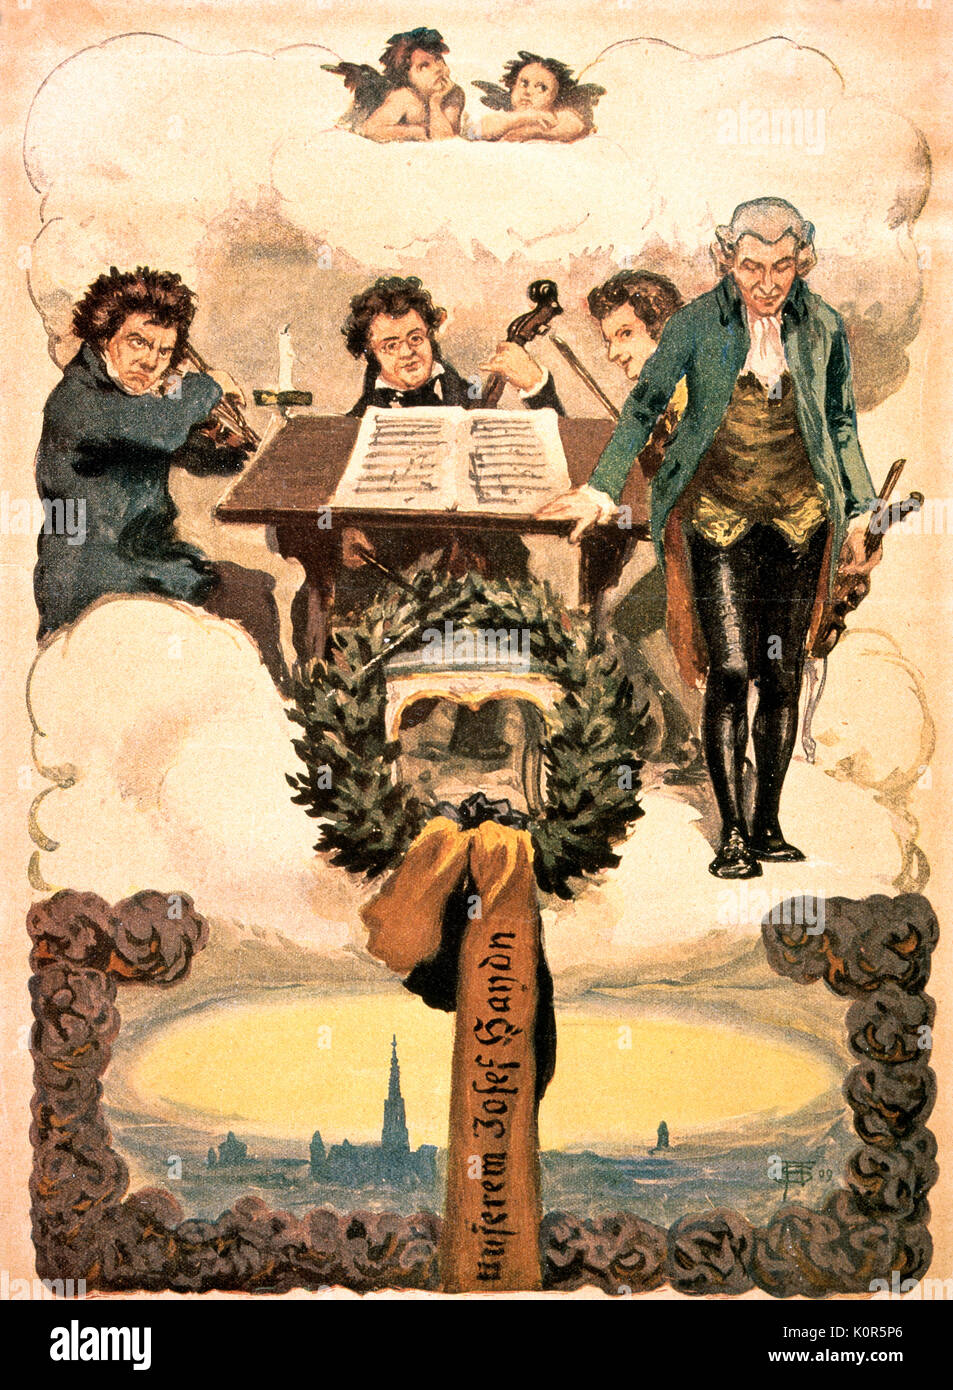 Haydn & Heavenly Quartet. Austrian composer, 31 March 1732 - 31 May 1809. 19th century fantasy of quartet in heaven with from l.to r. Ludwig van Beethoven, Franz Schubert, Wolfgan Amadeus Mozart and Josef Haydn - Stock Image